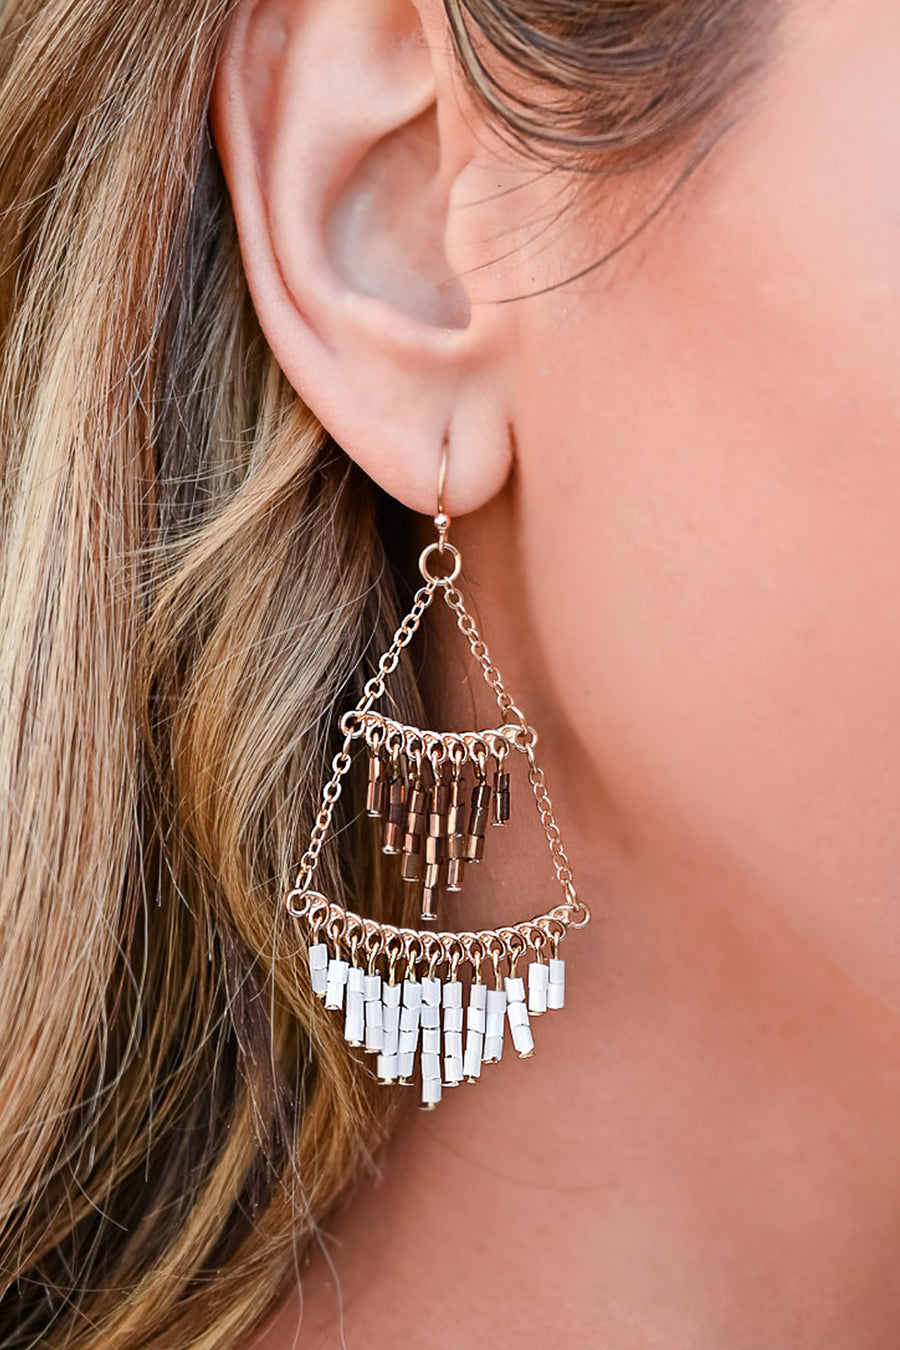 Swinging From The Chandelier Earrings - White womens gold tone fringe detail earrings closet candy front